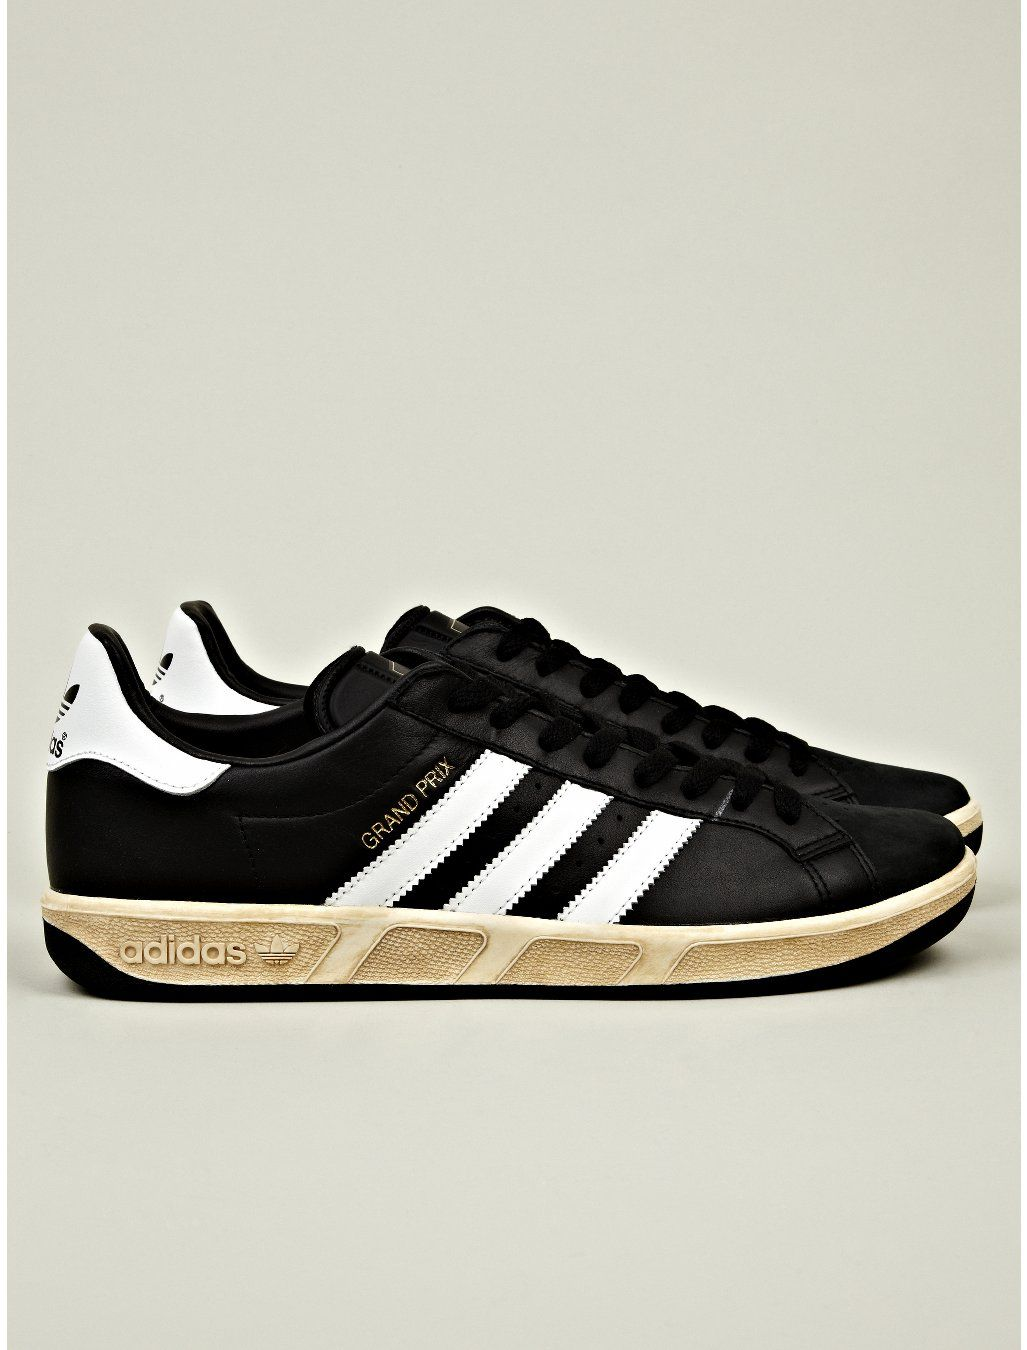 adidas vintage grand prix sneaker boots pinterest. Black Bedroom Furniture Sets. Home Design Ideas